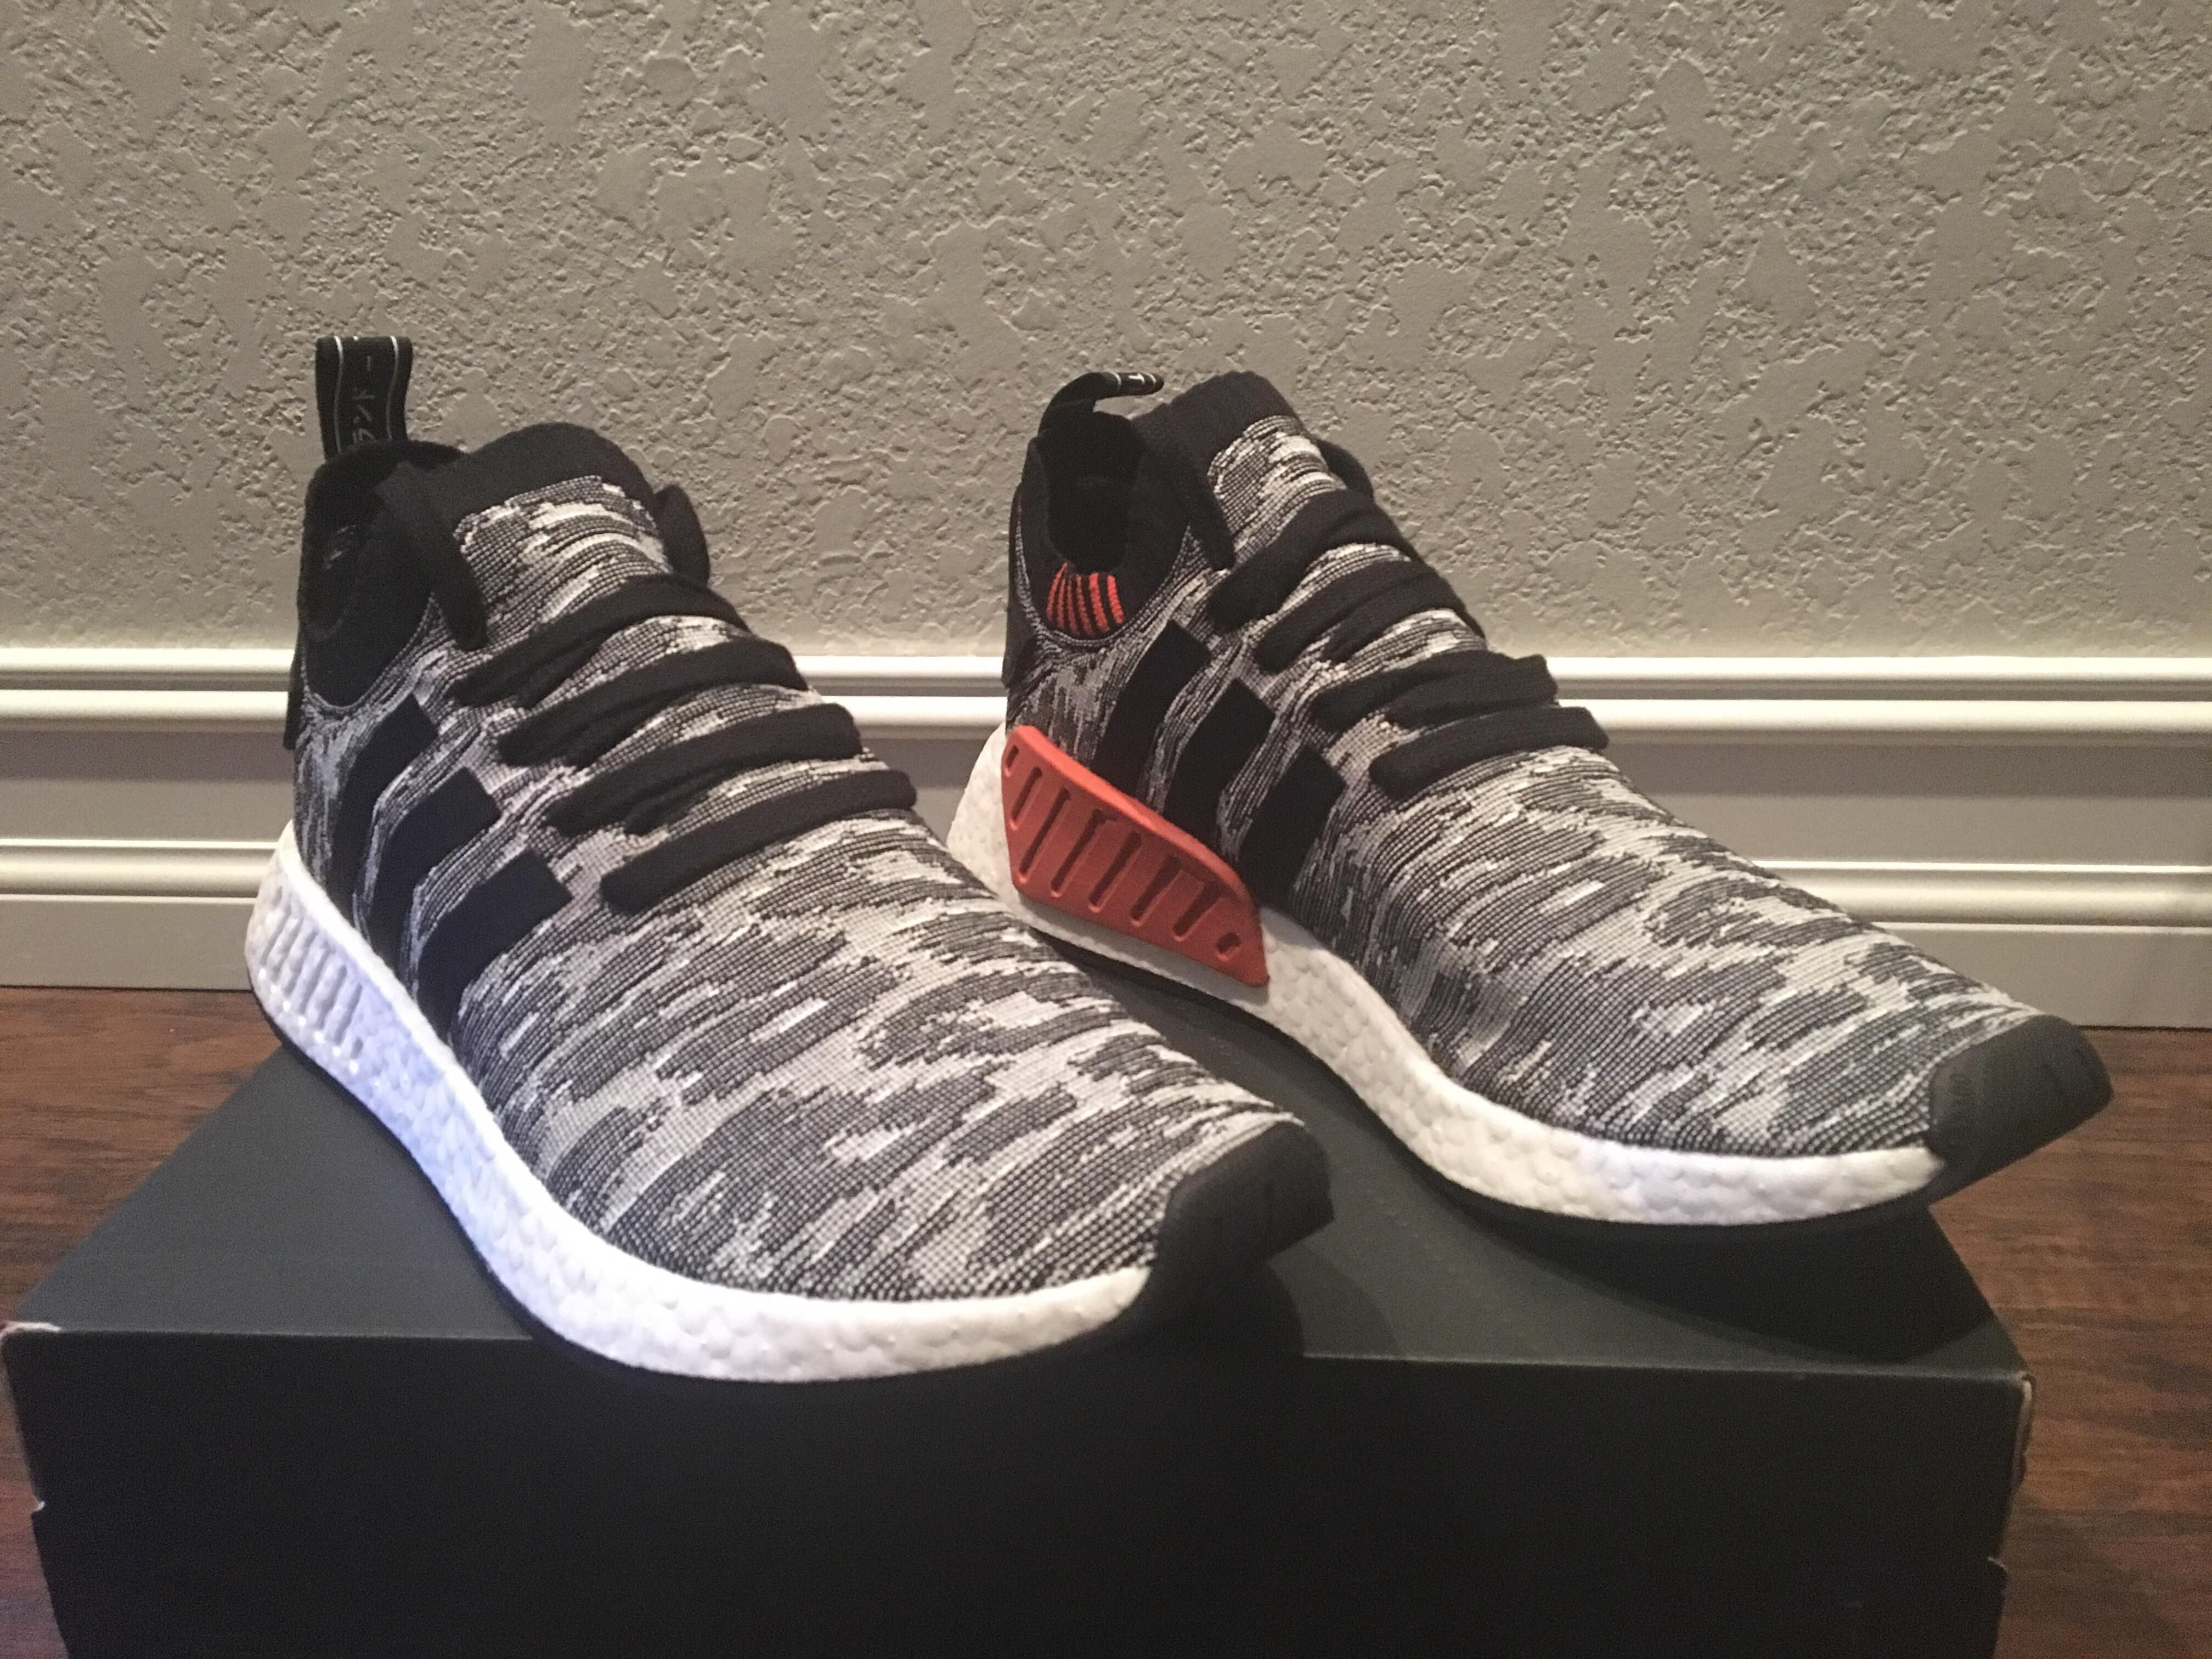 1faeb4b56d Pickup] First pair of NMDs | Nike Sneakers | Adidas sneakers, Adidas ...